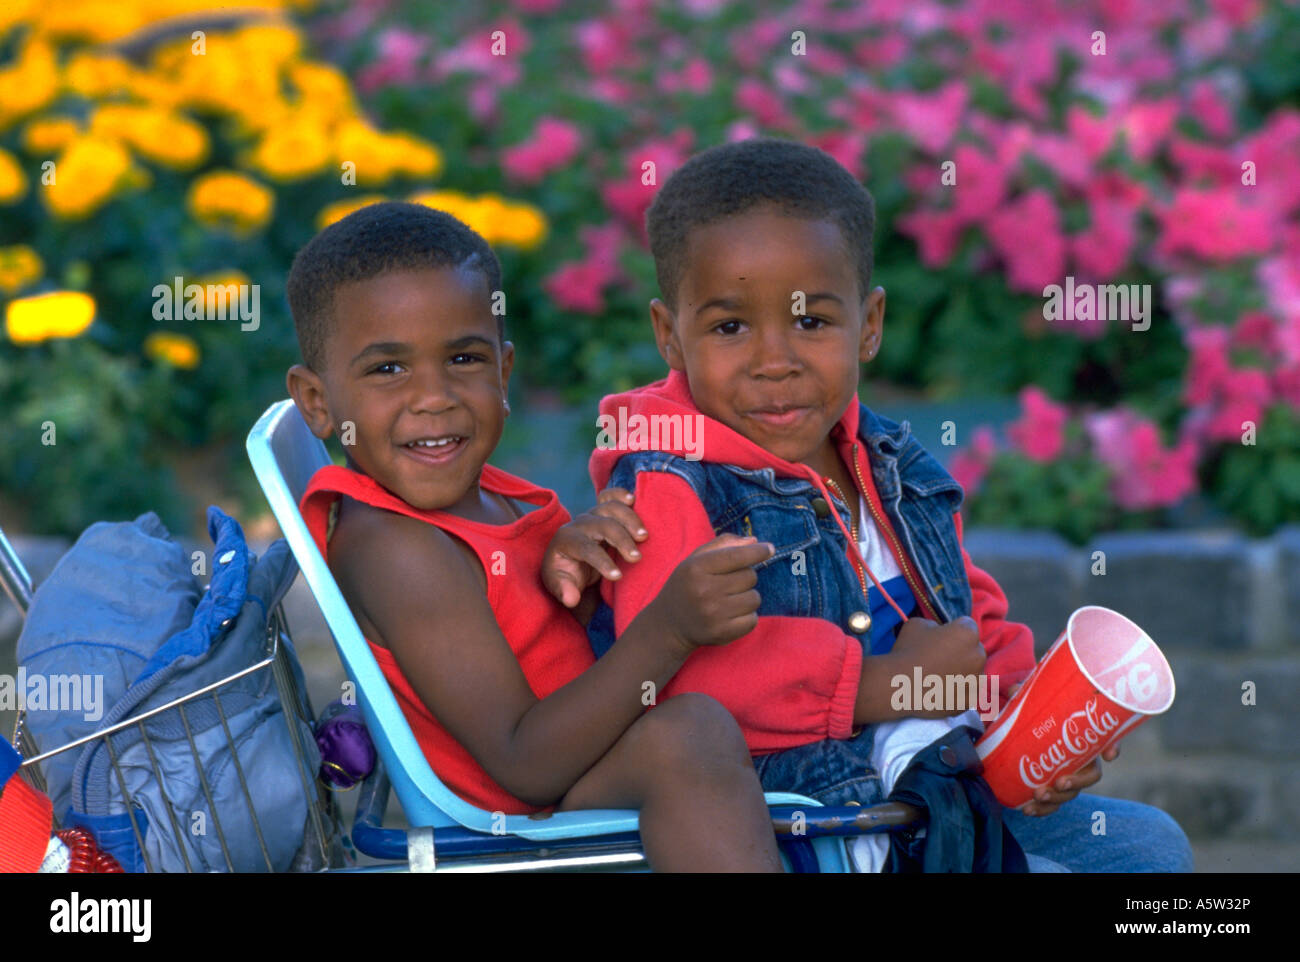 Painet hl1144 brothers boys twins siblings together african american stroller cocacola flowers togetherness brotherly love